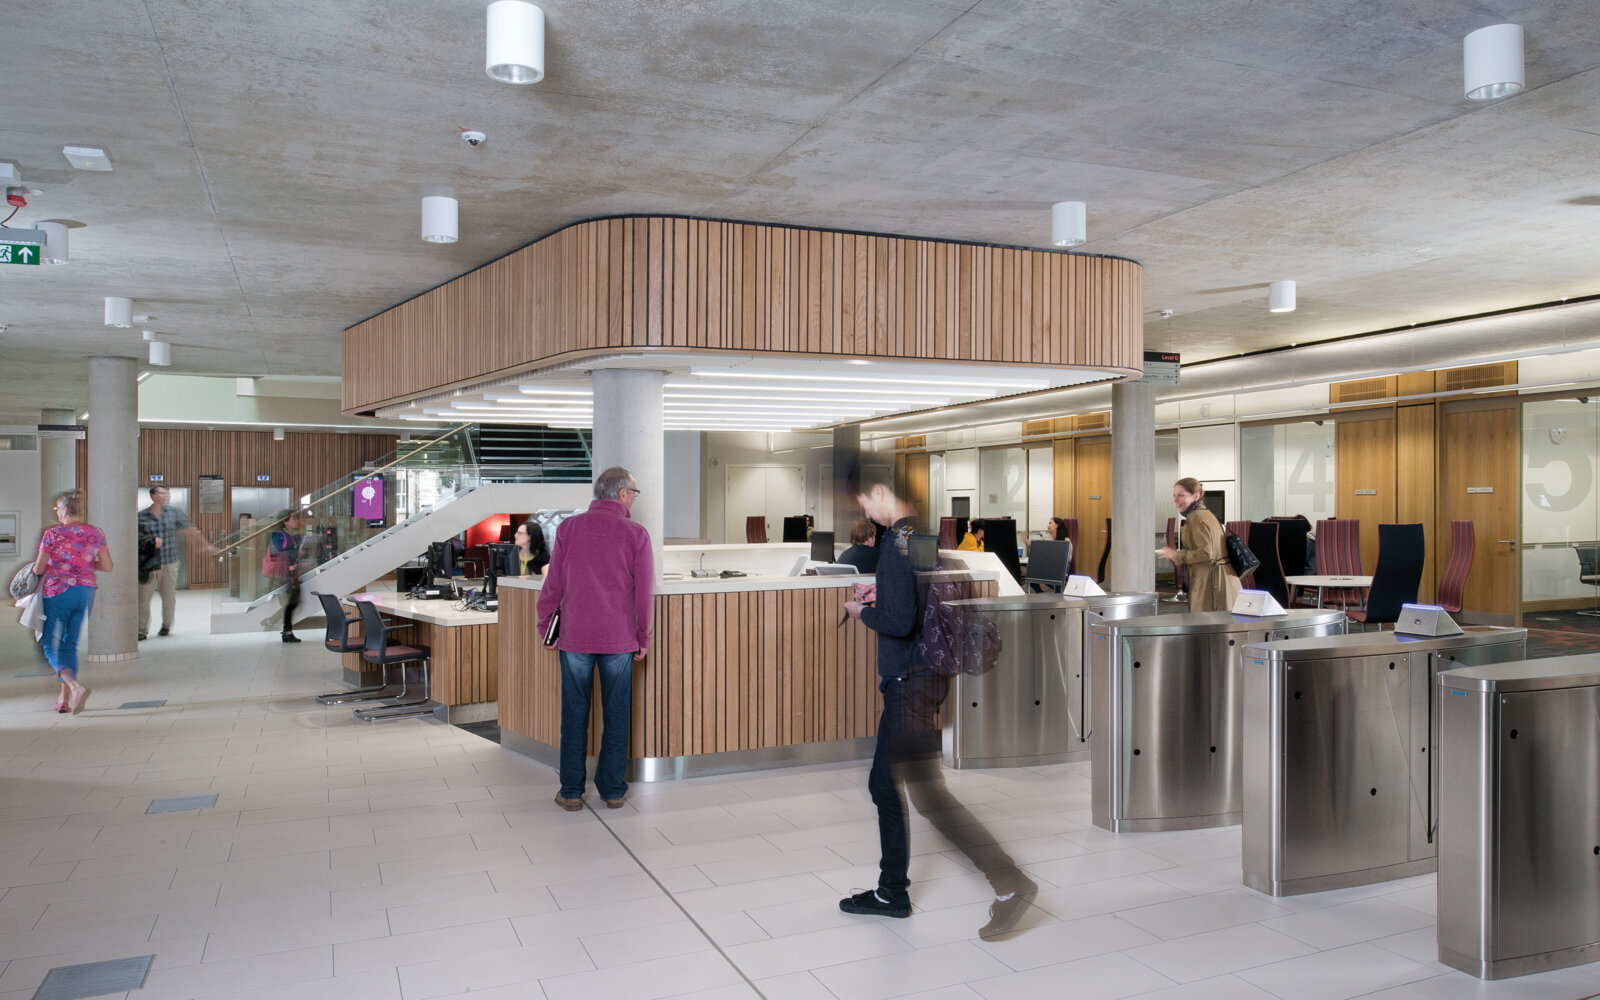 The Laidlaw Library reception